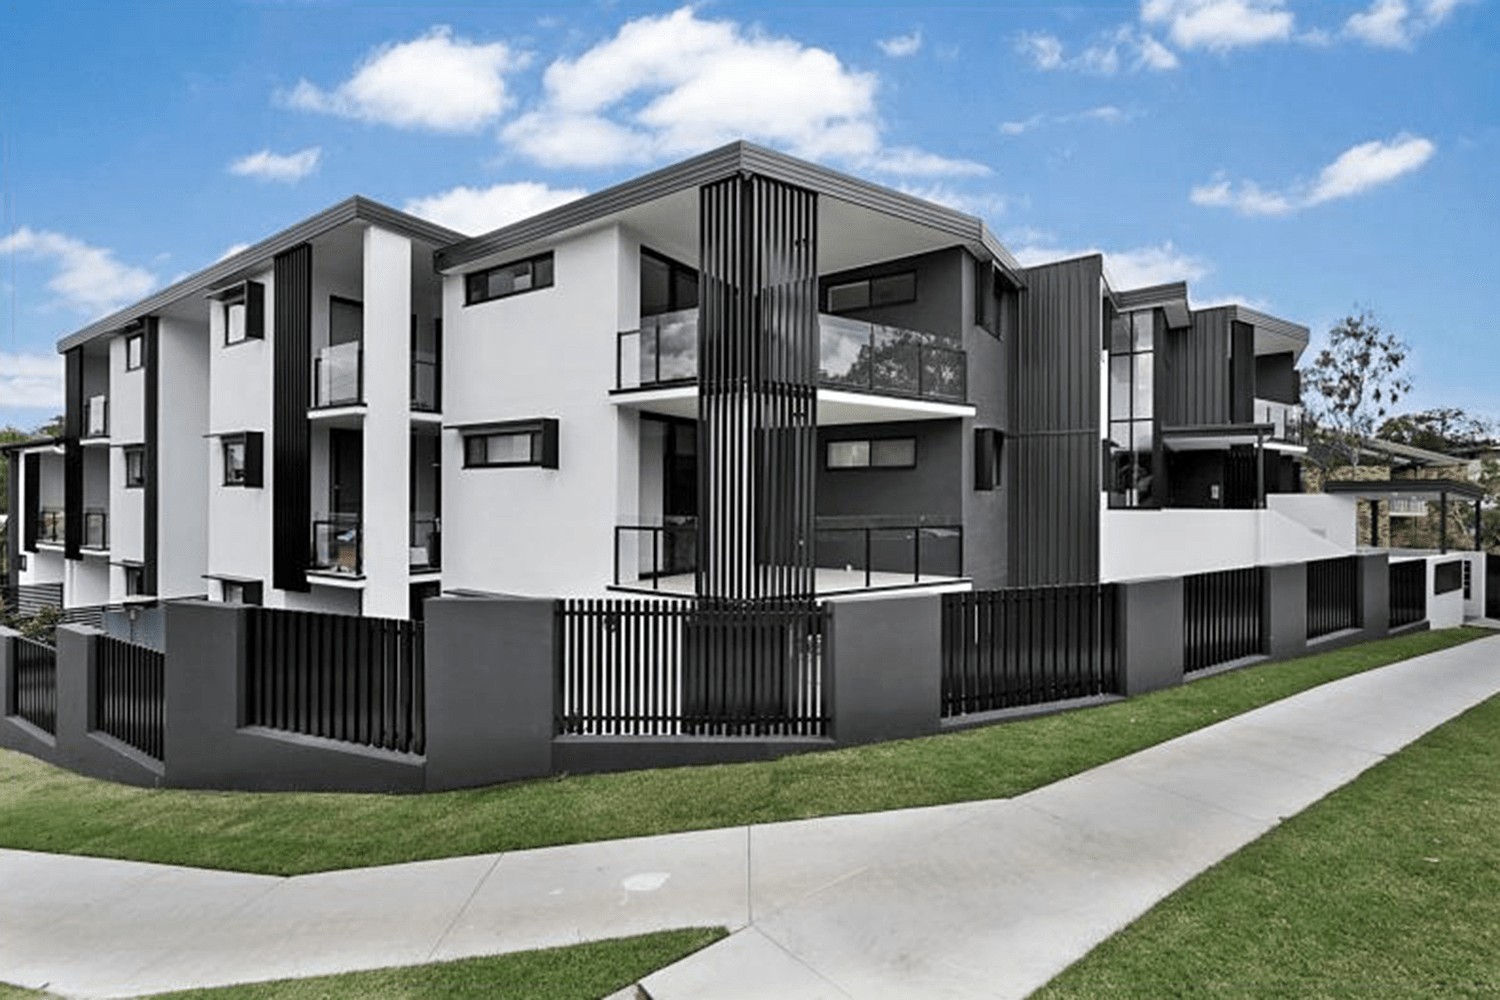 "<p class=""project-name""> Stanley St, Indooroopilly</br><p class=""project-category"">Multi-residential</p>"